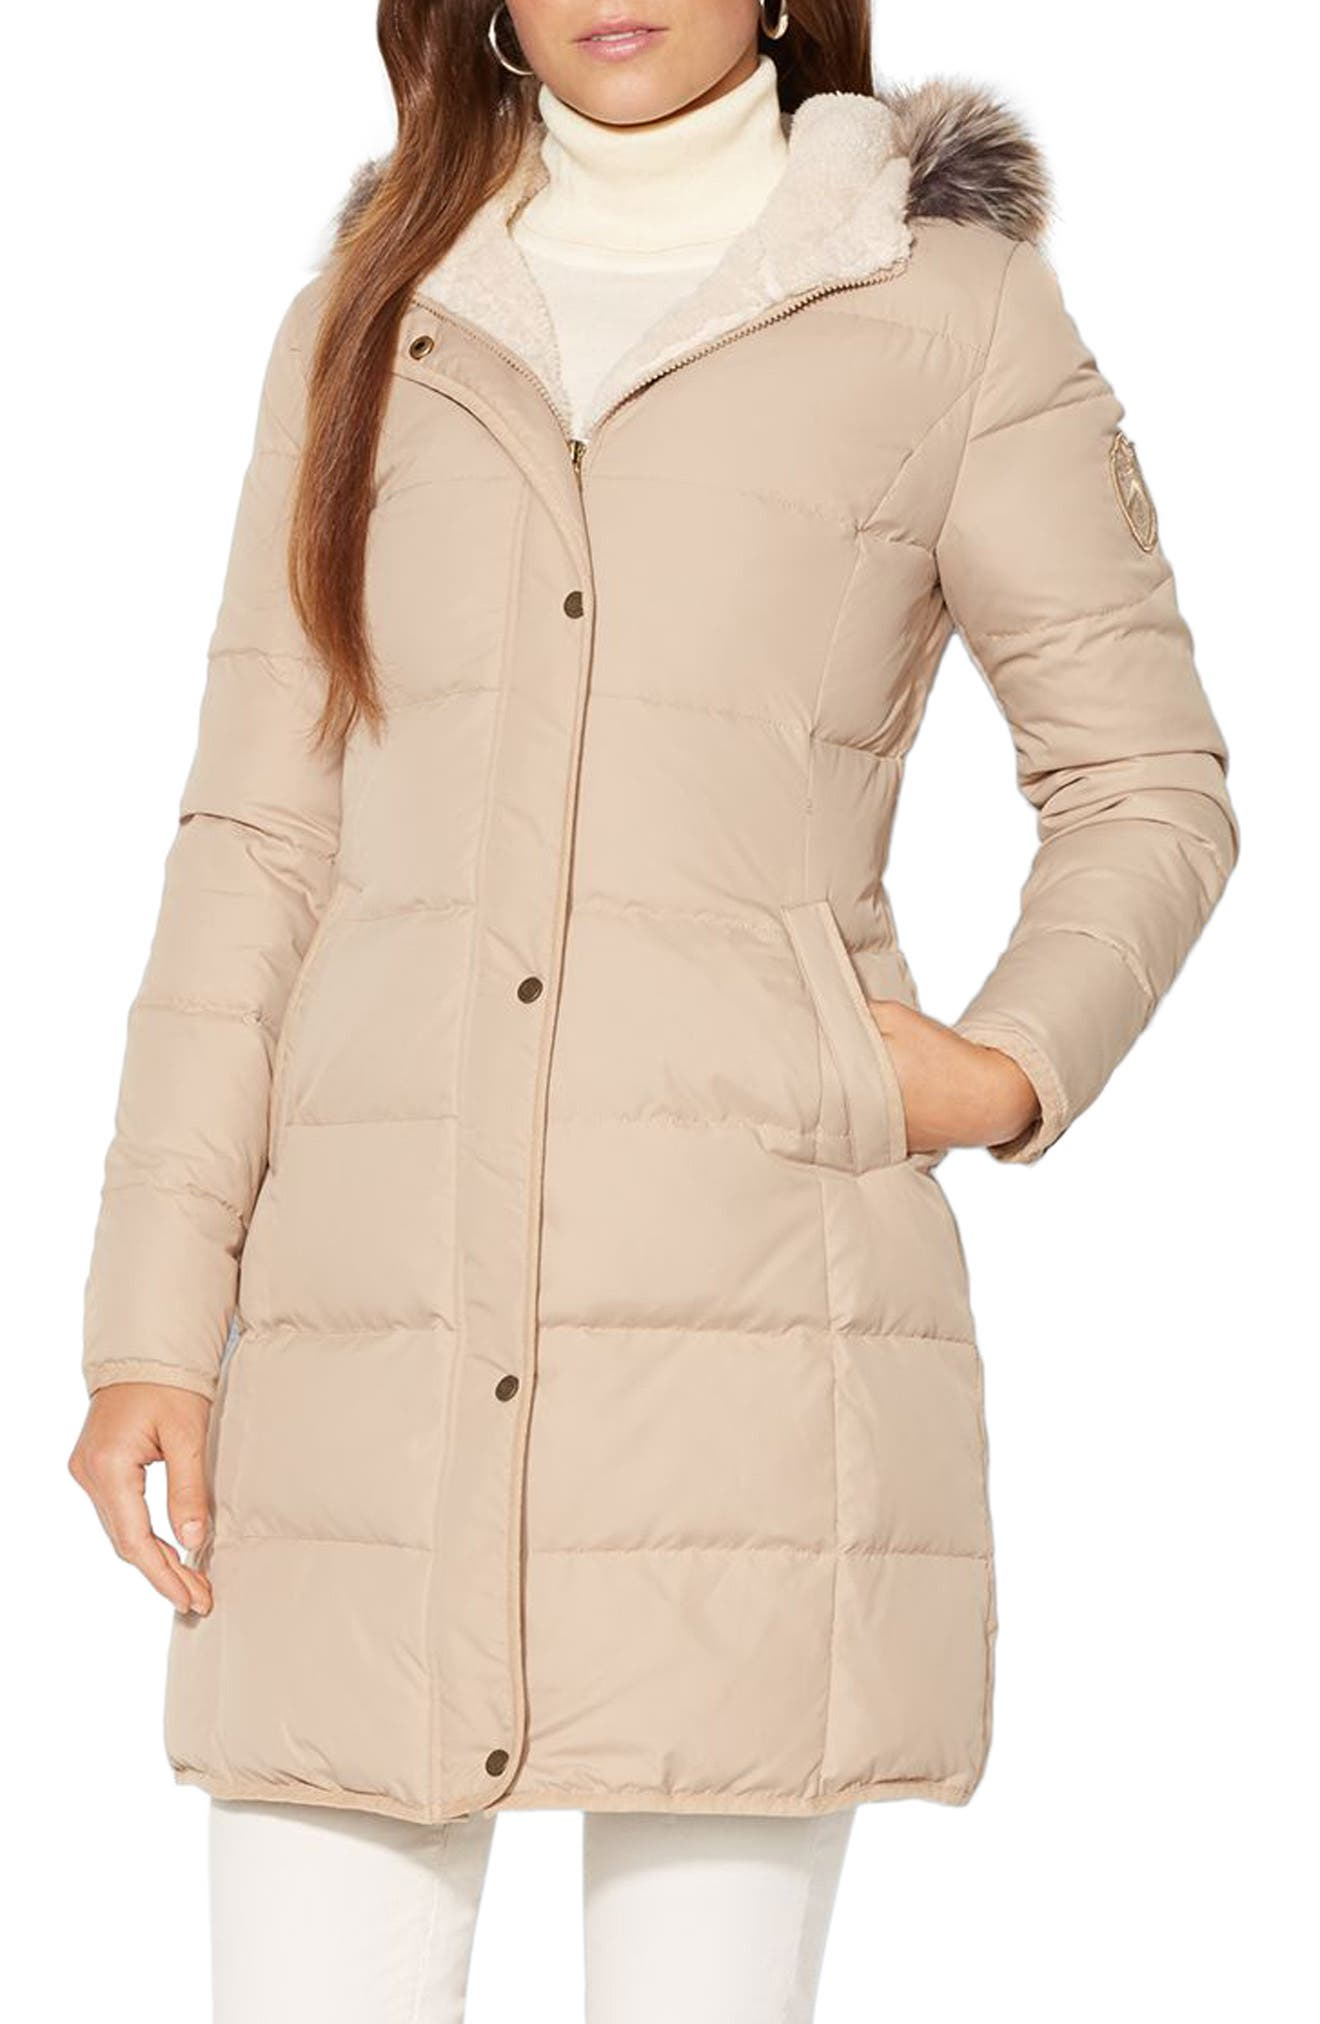 Lauren Ralph Lauren Quilted Down & Feather Jacket with Faux Fur Trim (Petite)